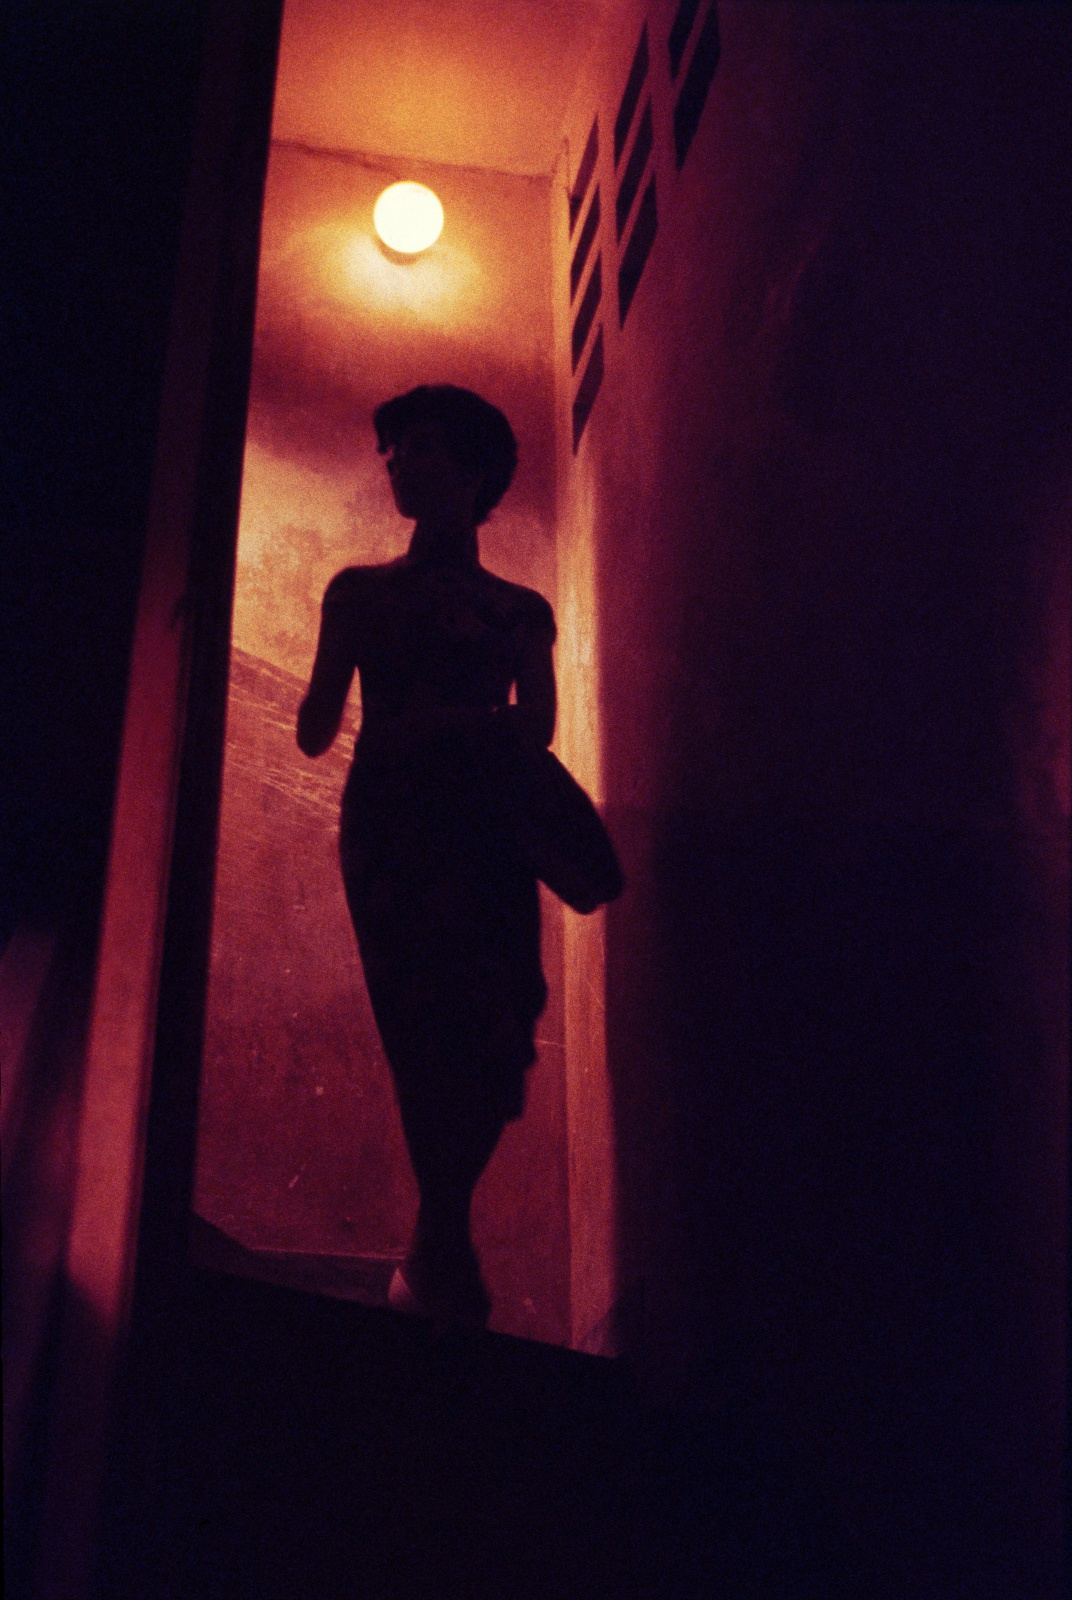 Wing Shya, 'In the Mood for Love', film still